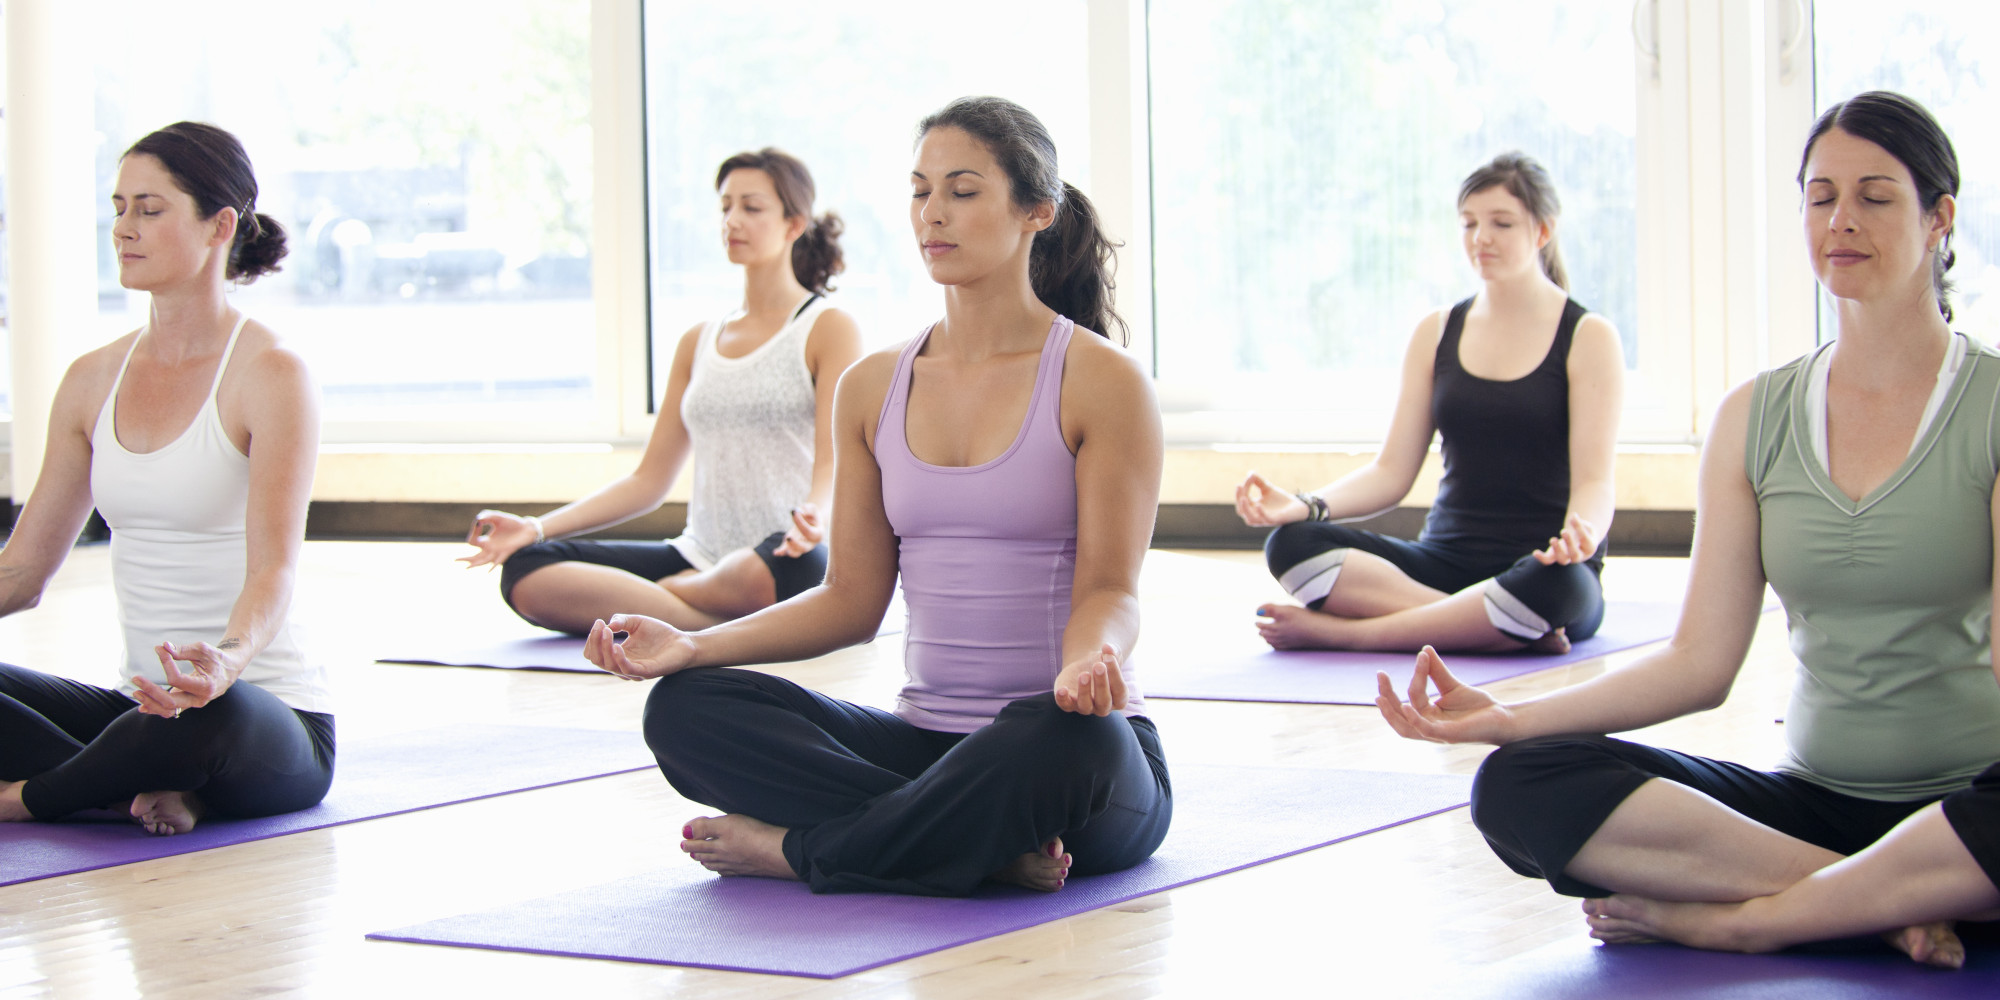 The Major Difference between Yoga Studios and Gyms